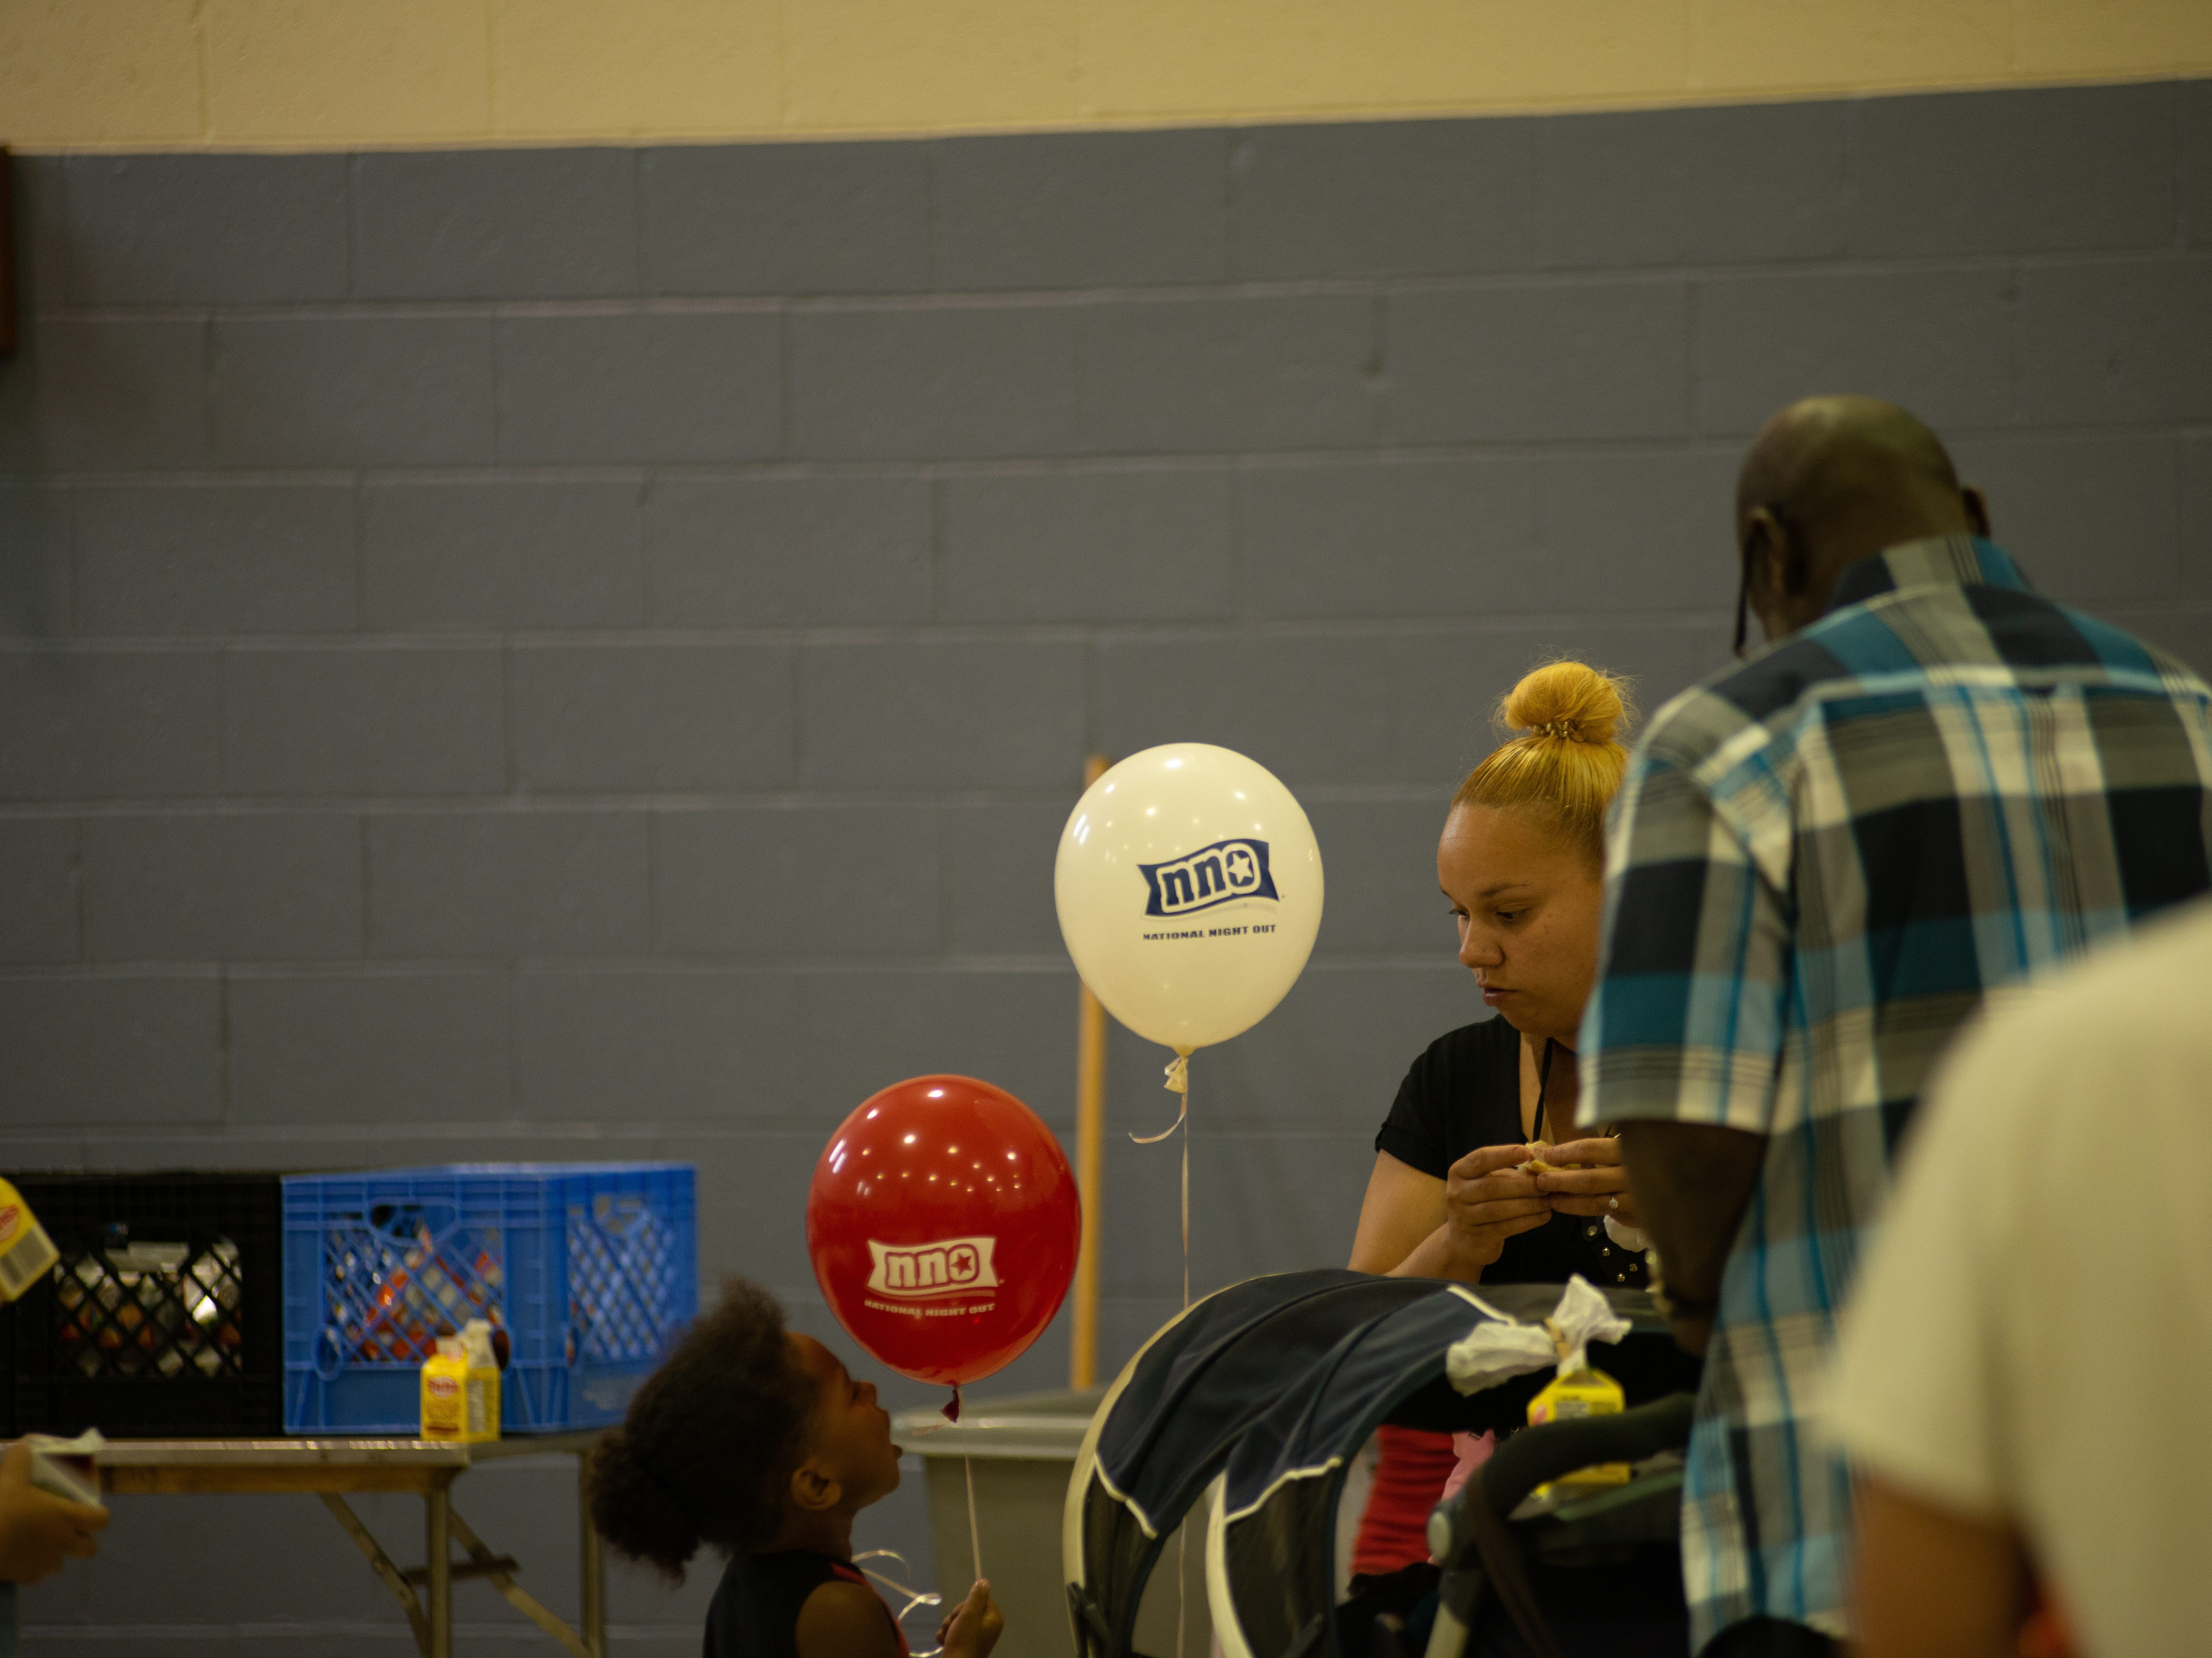 National Night Out events were held at the Salvation Army in Lebanon, at 1031 Guilford Street on Tuesday, Aug. 7, 2018. Events were moved inside due to poor weather.